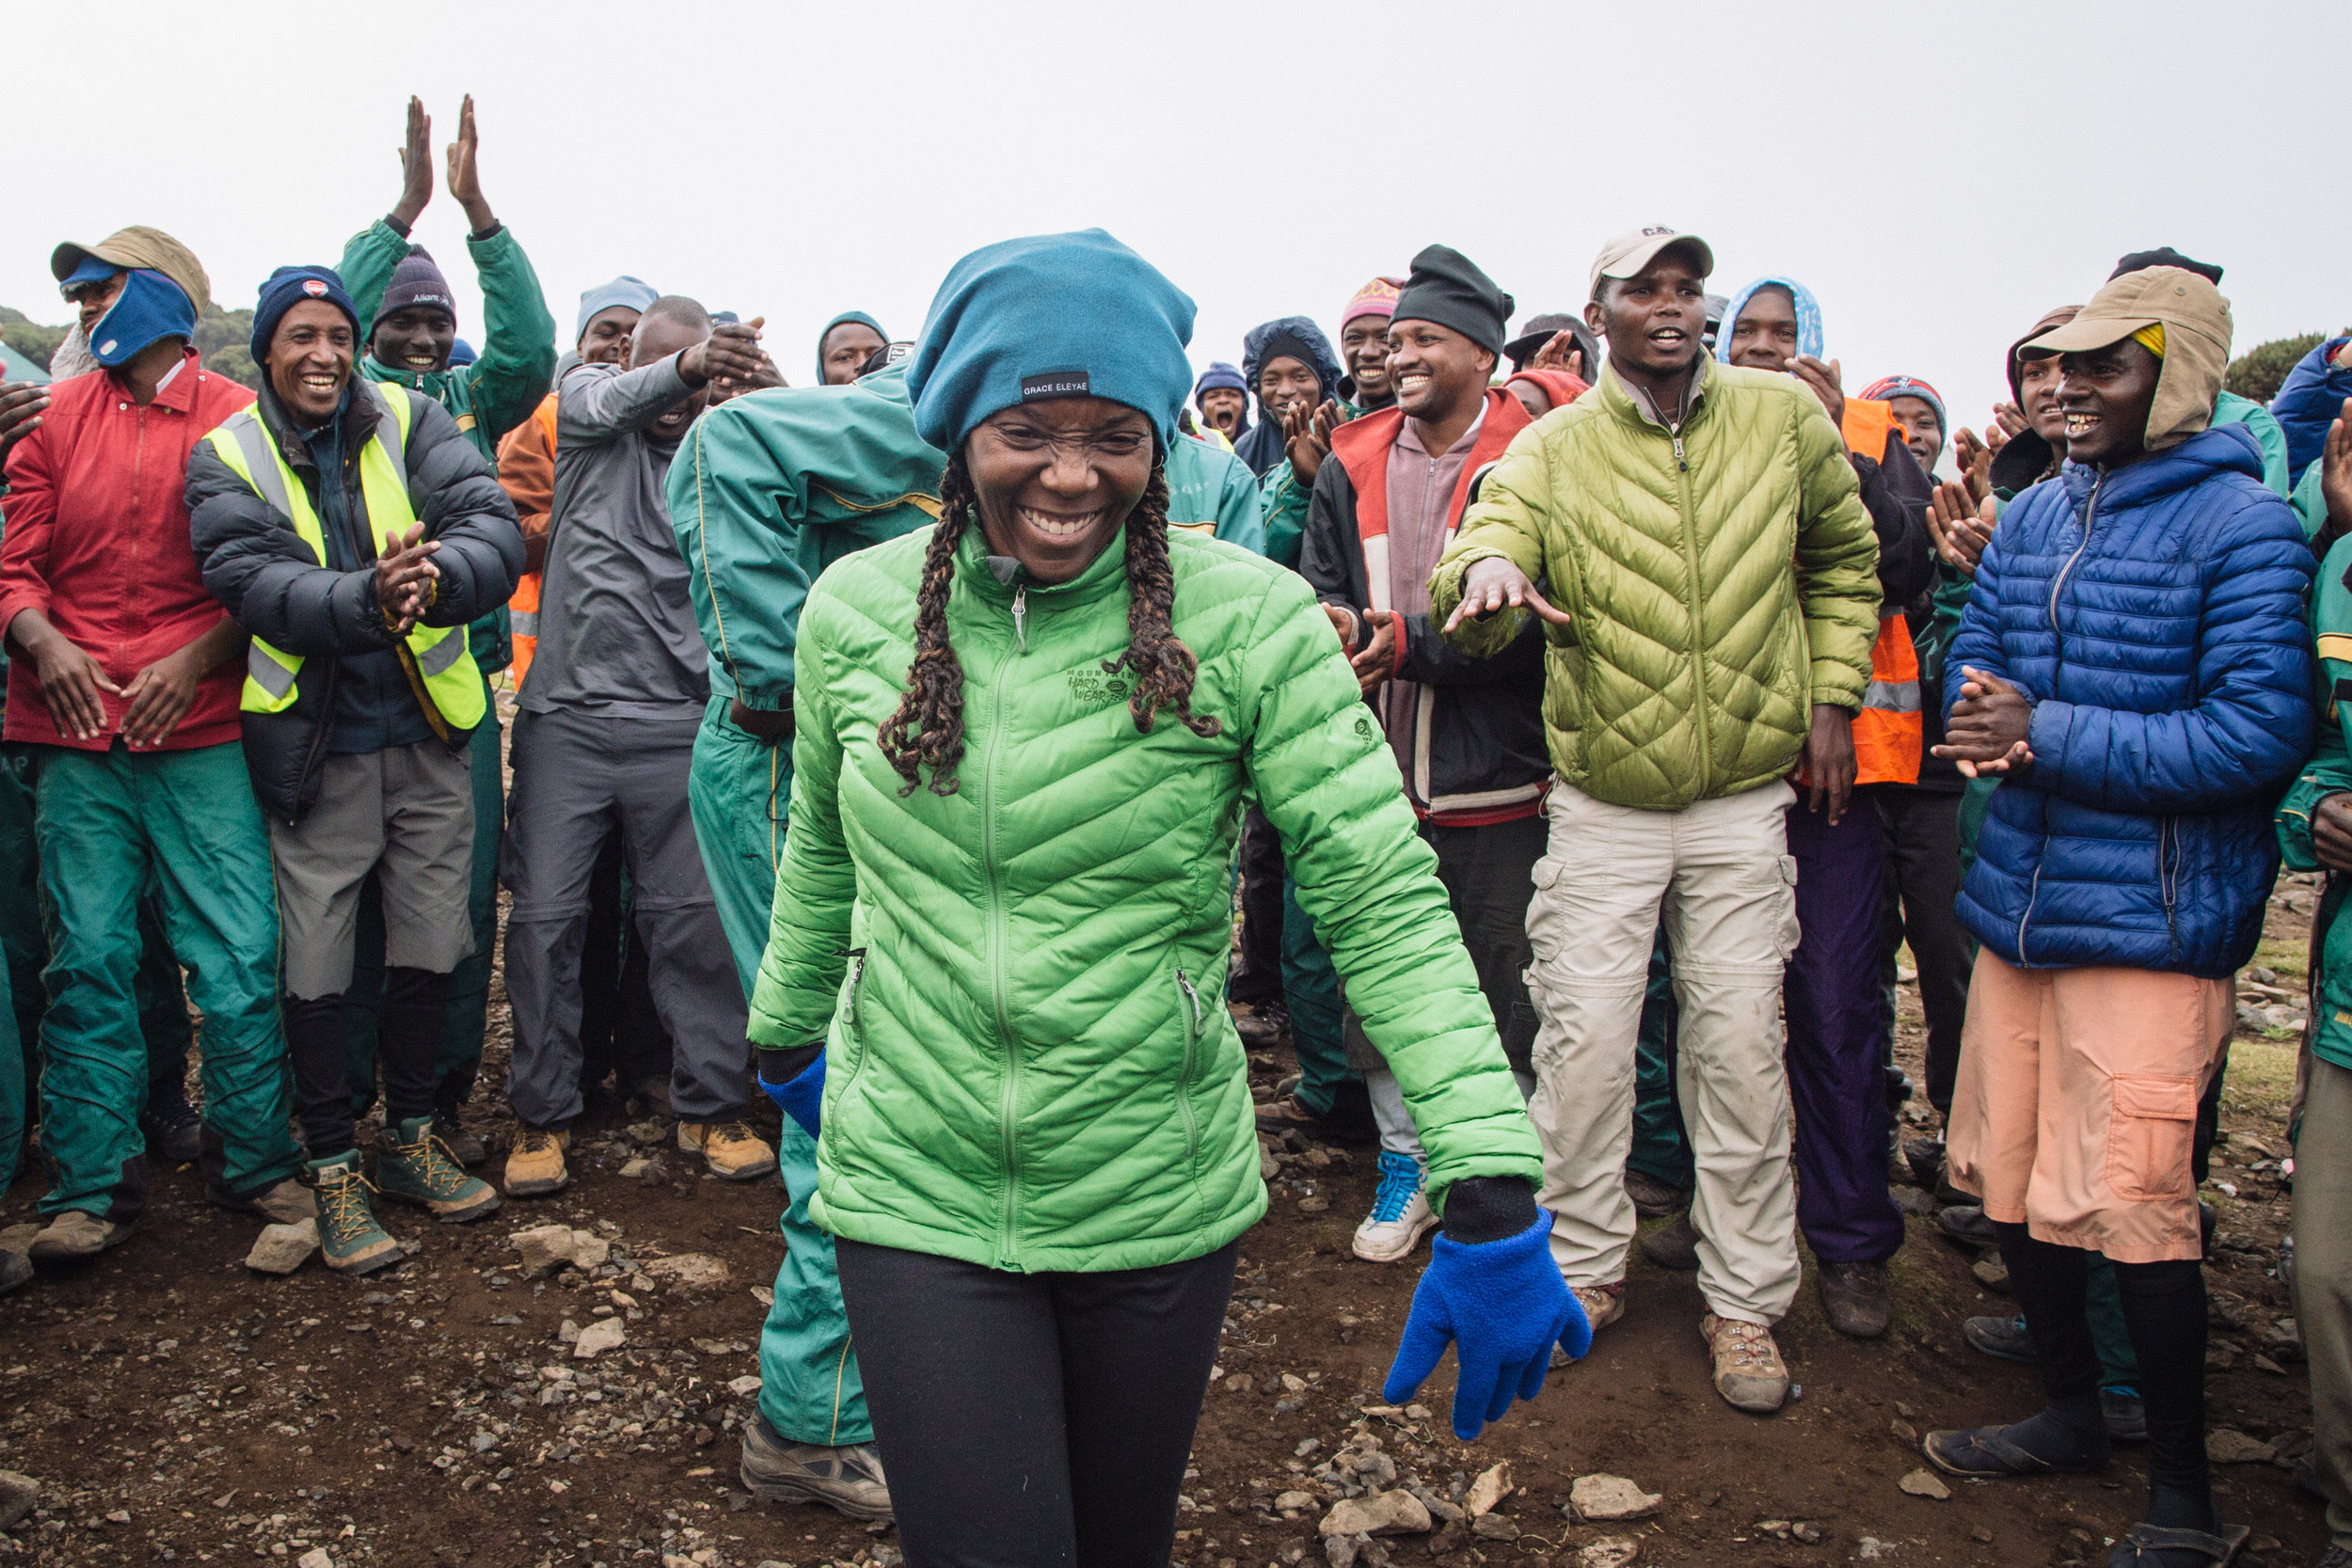 Get to know the other trekkers and your crew - You're all taking an incredible journey - one that's made exponentially better because you're sharing it with each other. Don't forget that together, you have a collective strength that will get you through even the toughest times!